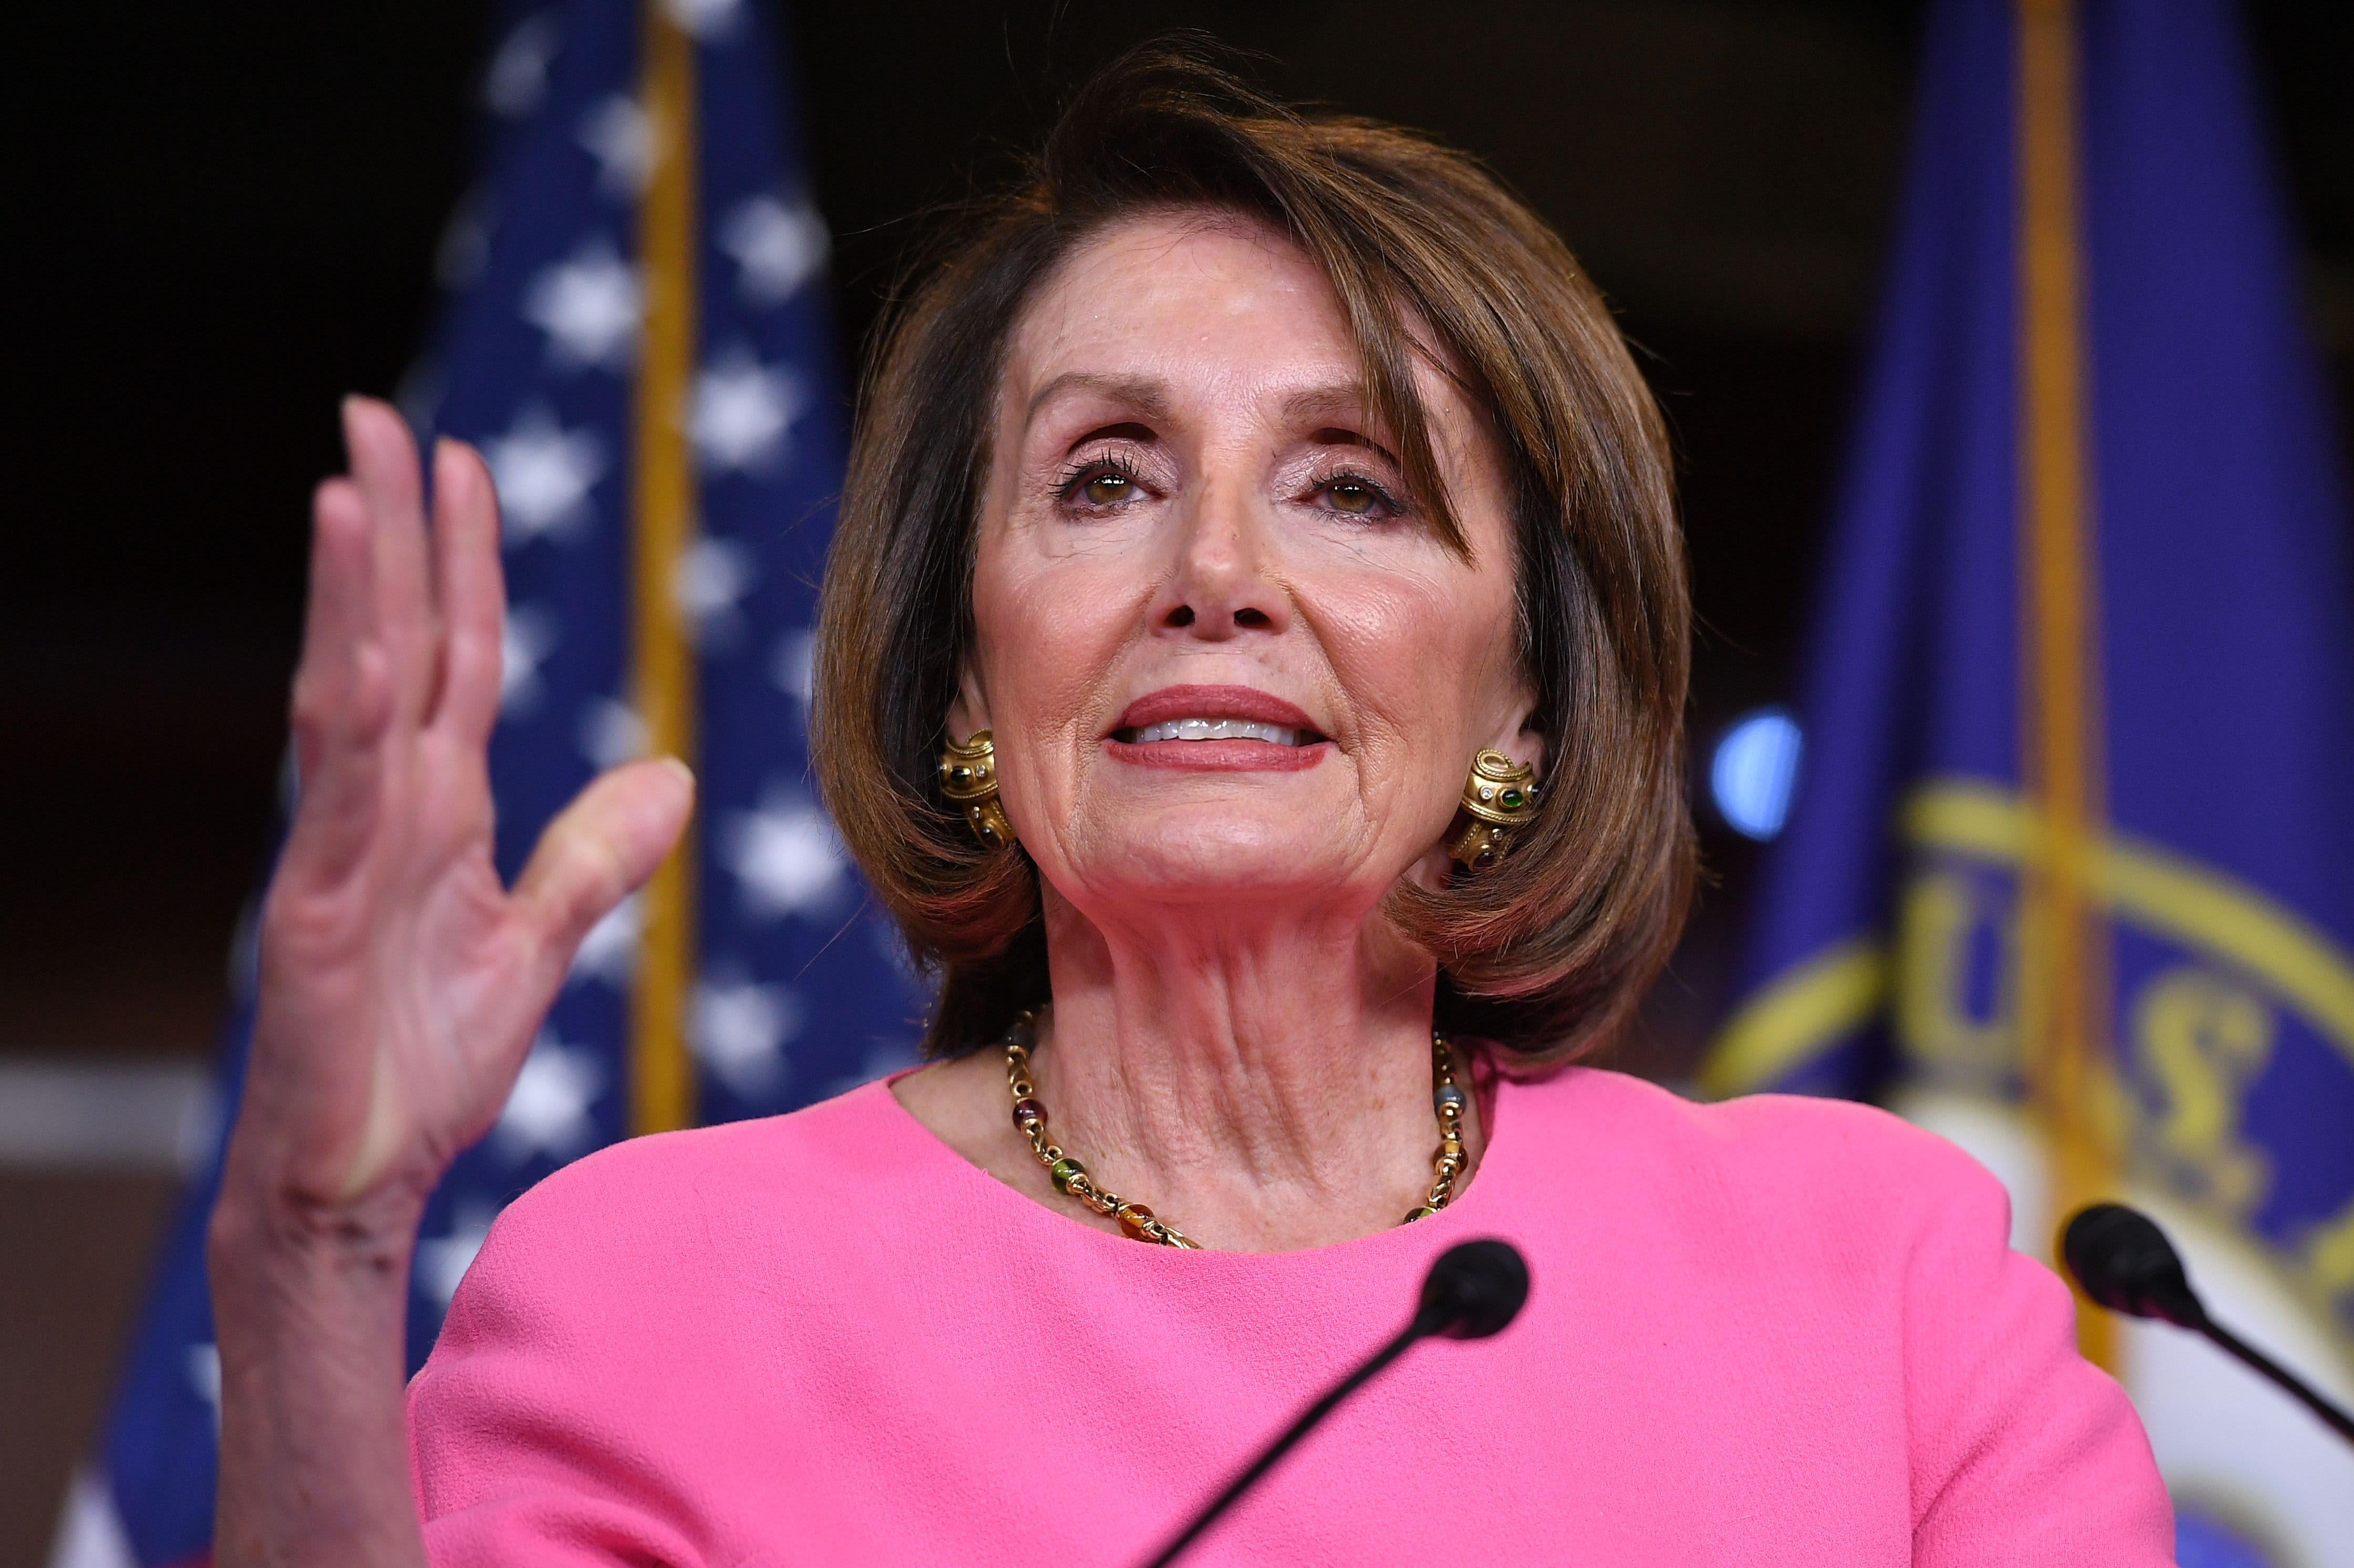 Pelosi: Fake video shows Facebook were 'willing enablers' of Russian election interference